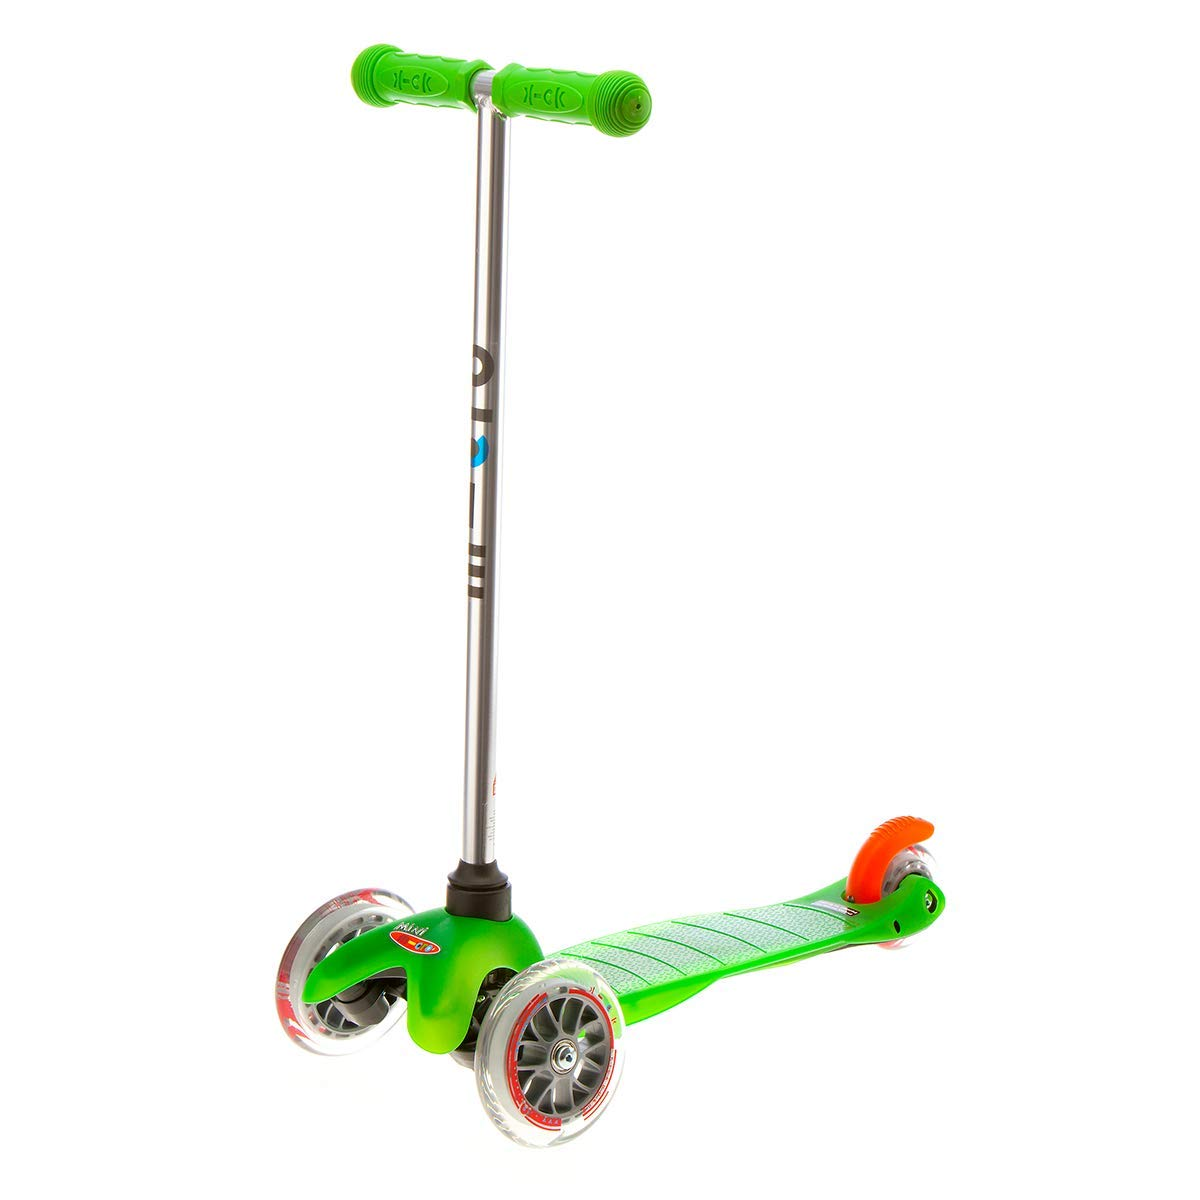 Mini Micro Scooter - Green by Micro Kickboard